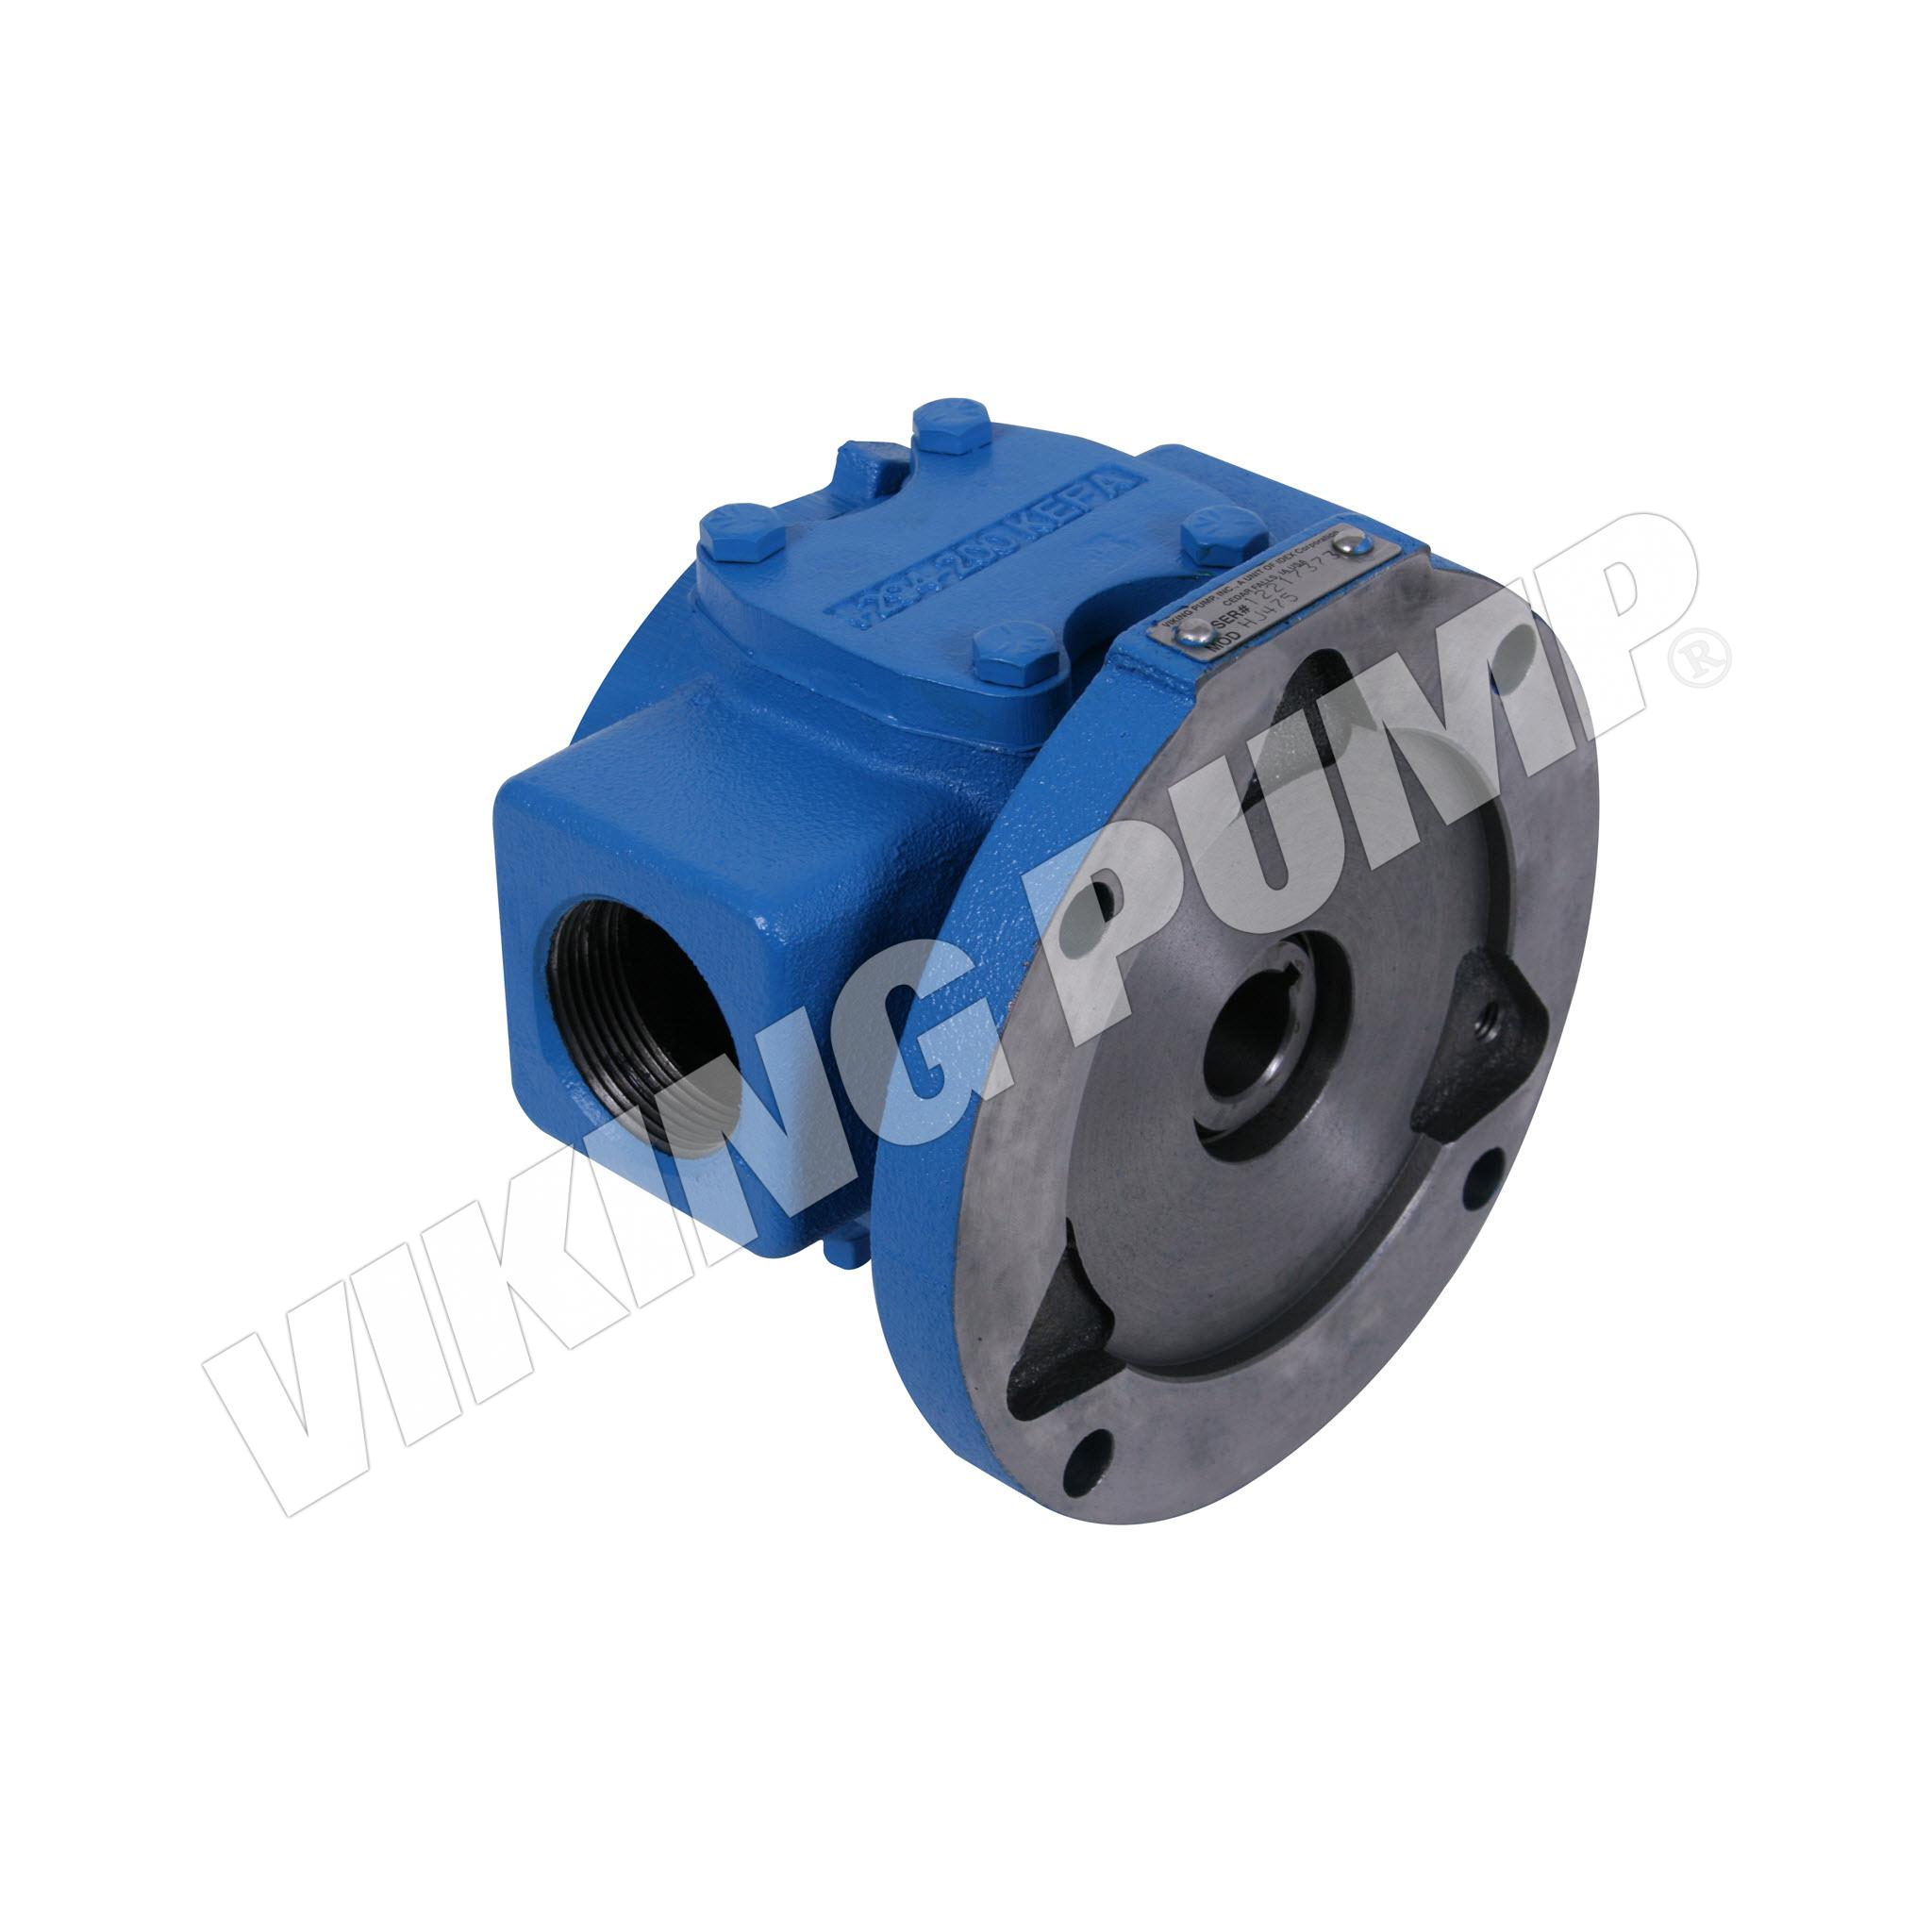 Model HJ475, Foot Mounted, Unmounted, Close-Coupled Pump